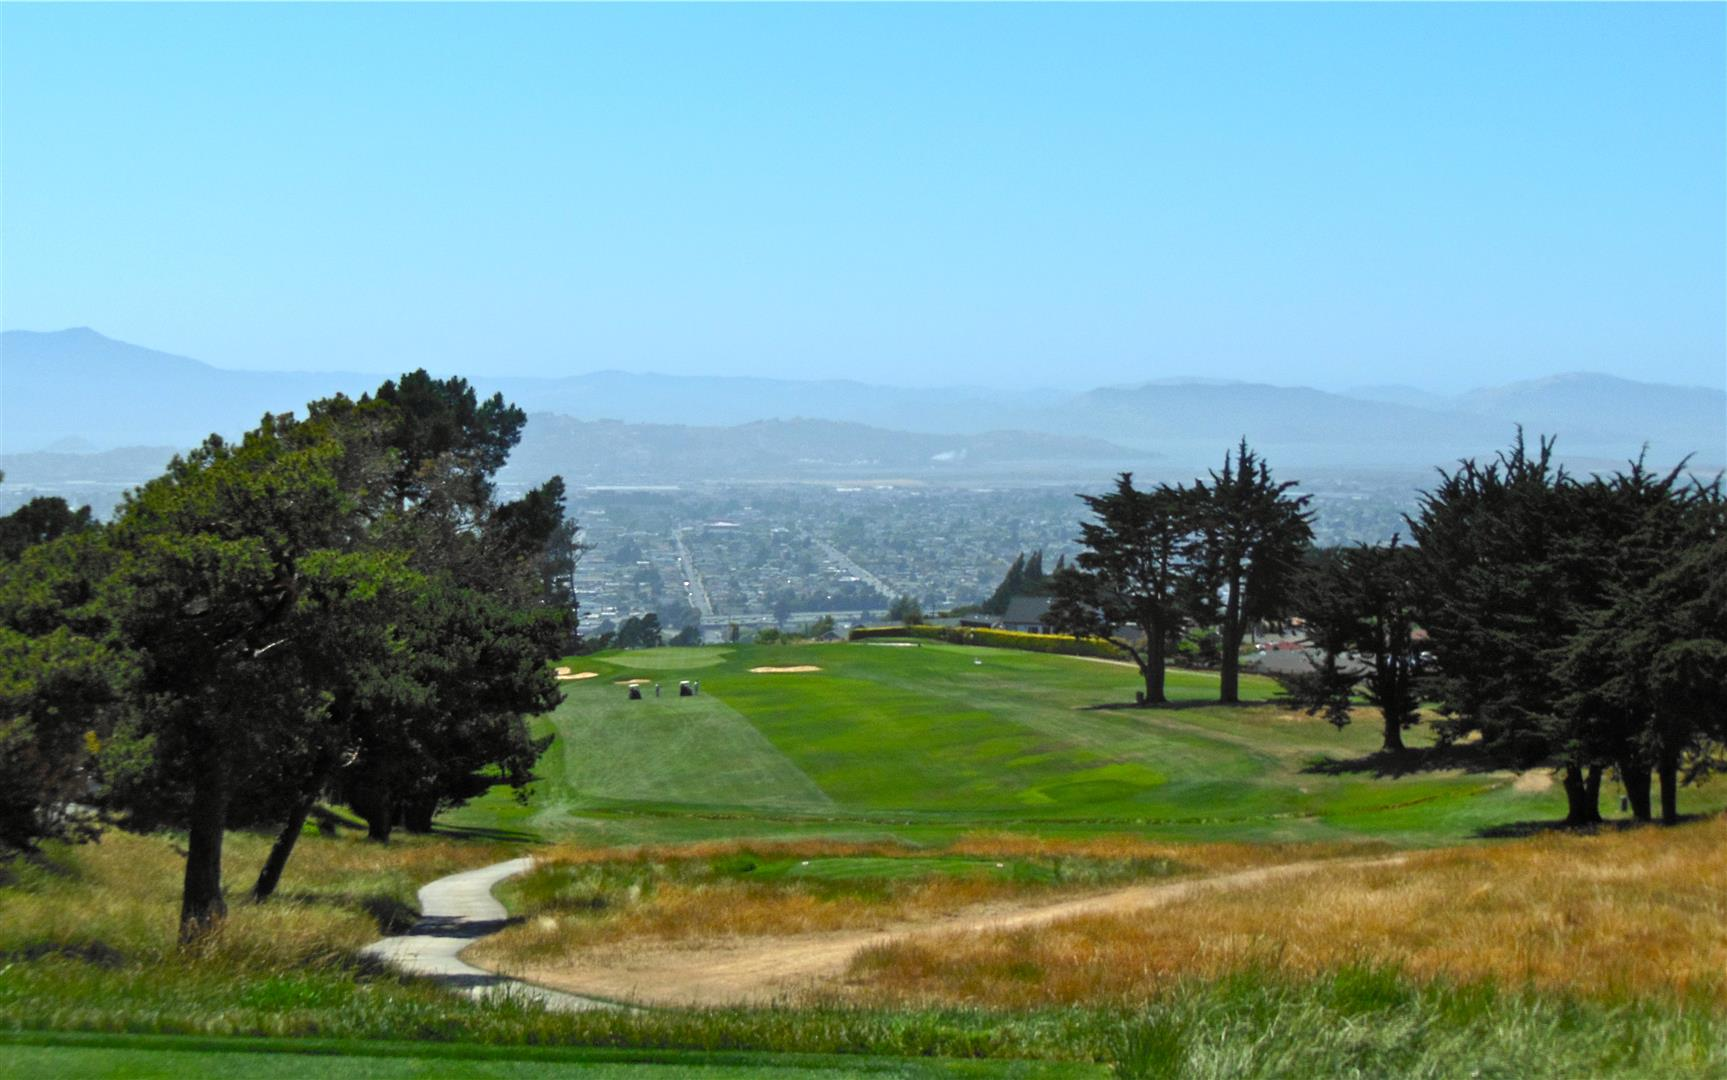 Golf Course Review Revisiting Mira Vista Golf Country